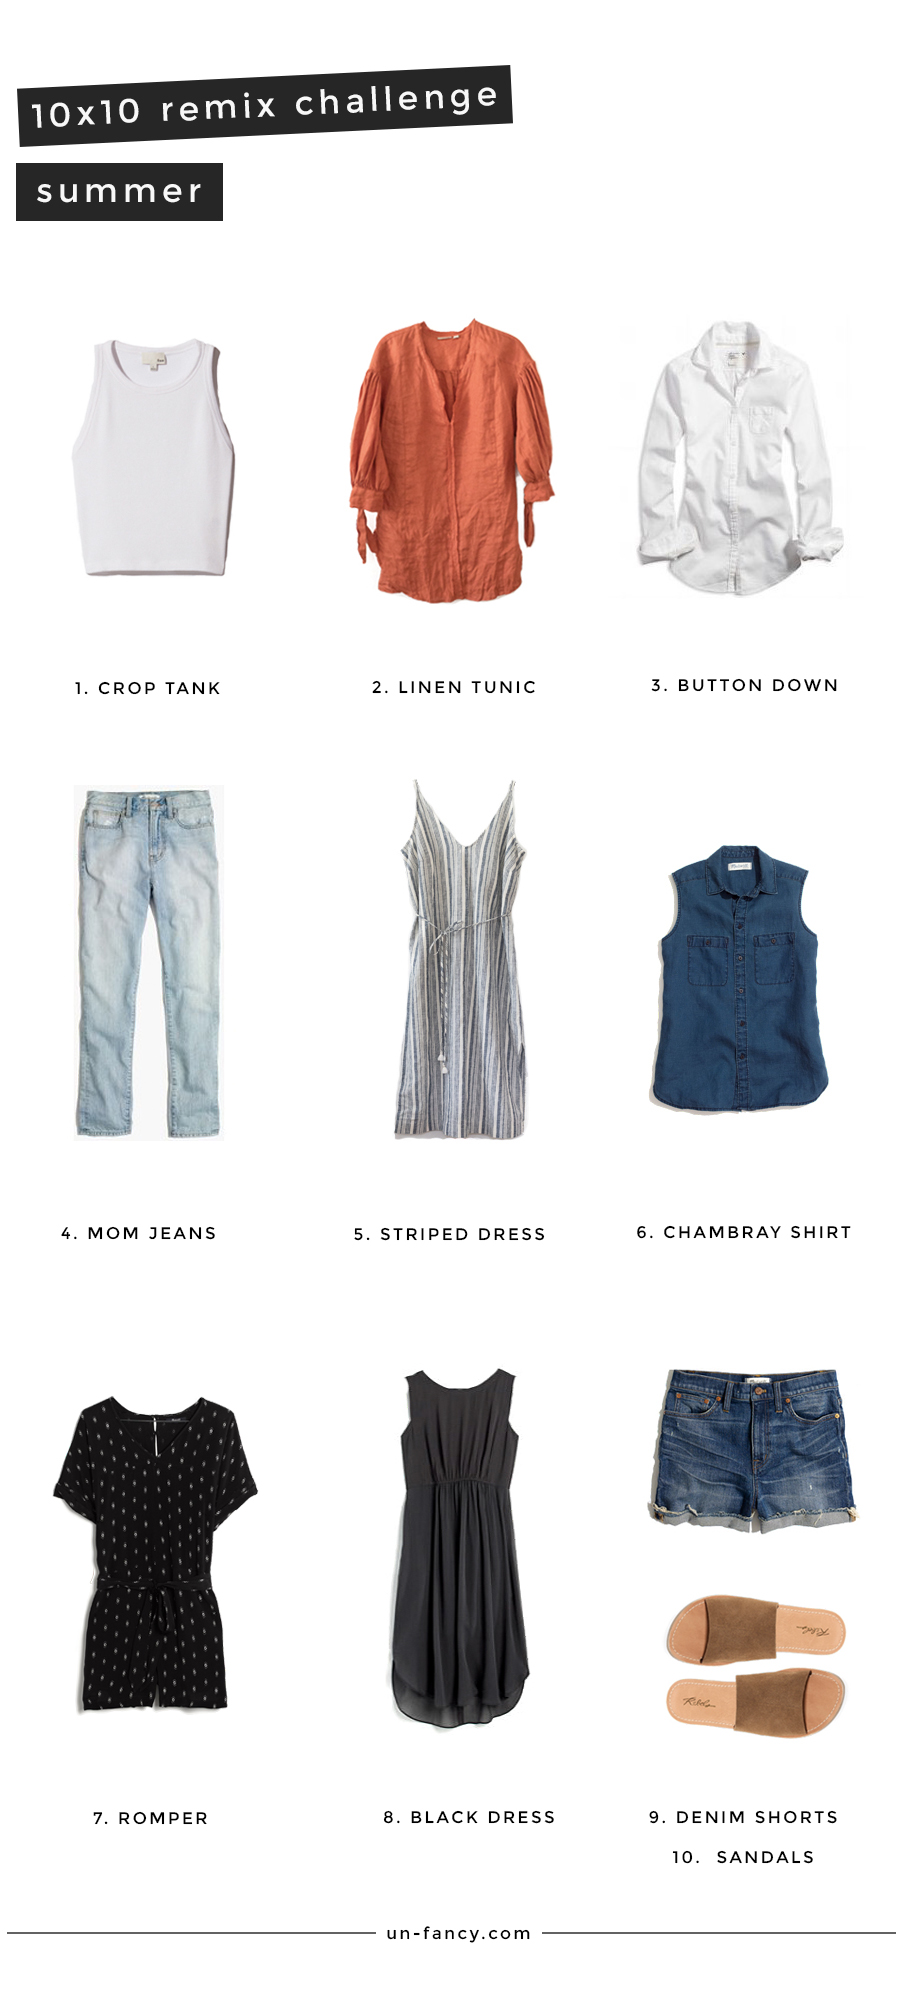 Summer Remix 10 Pieces 10 Outfits 10 Days